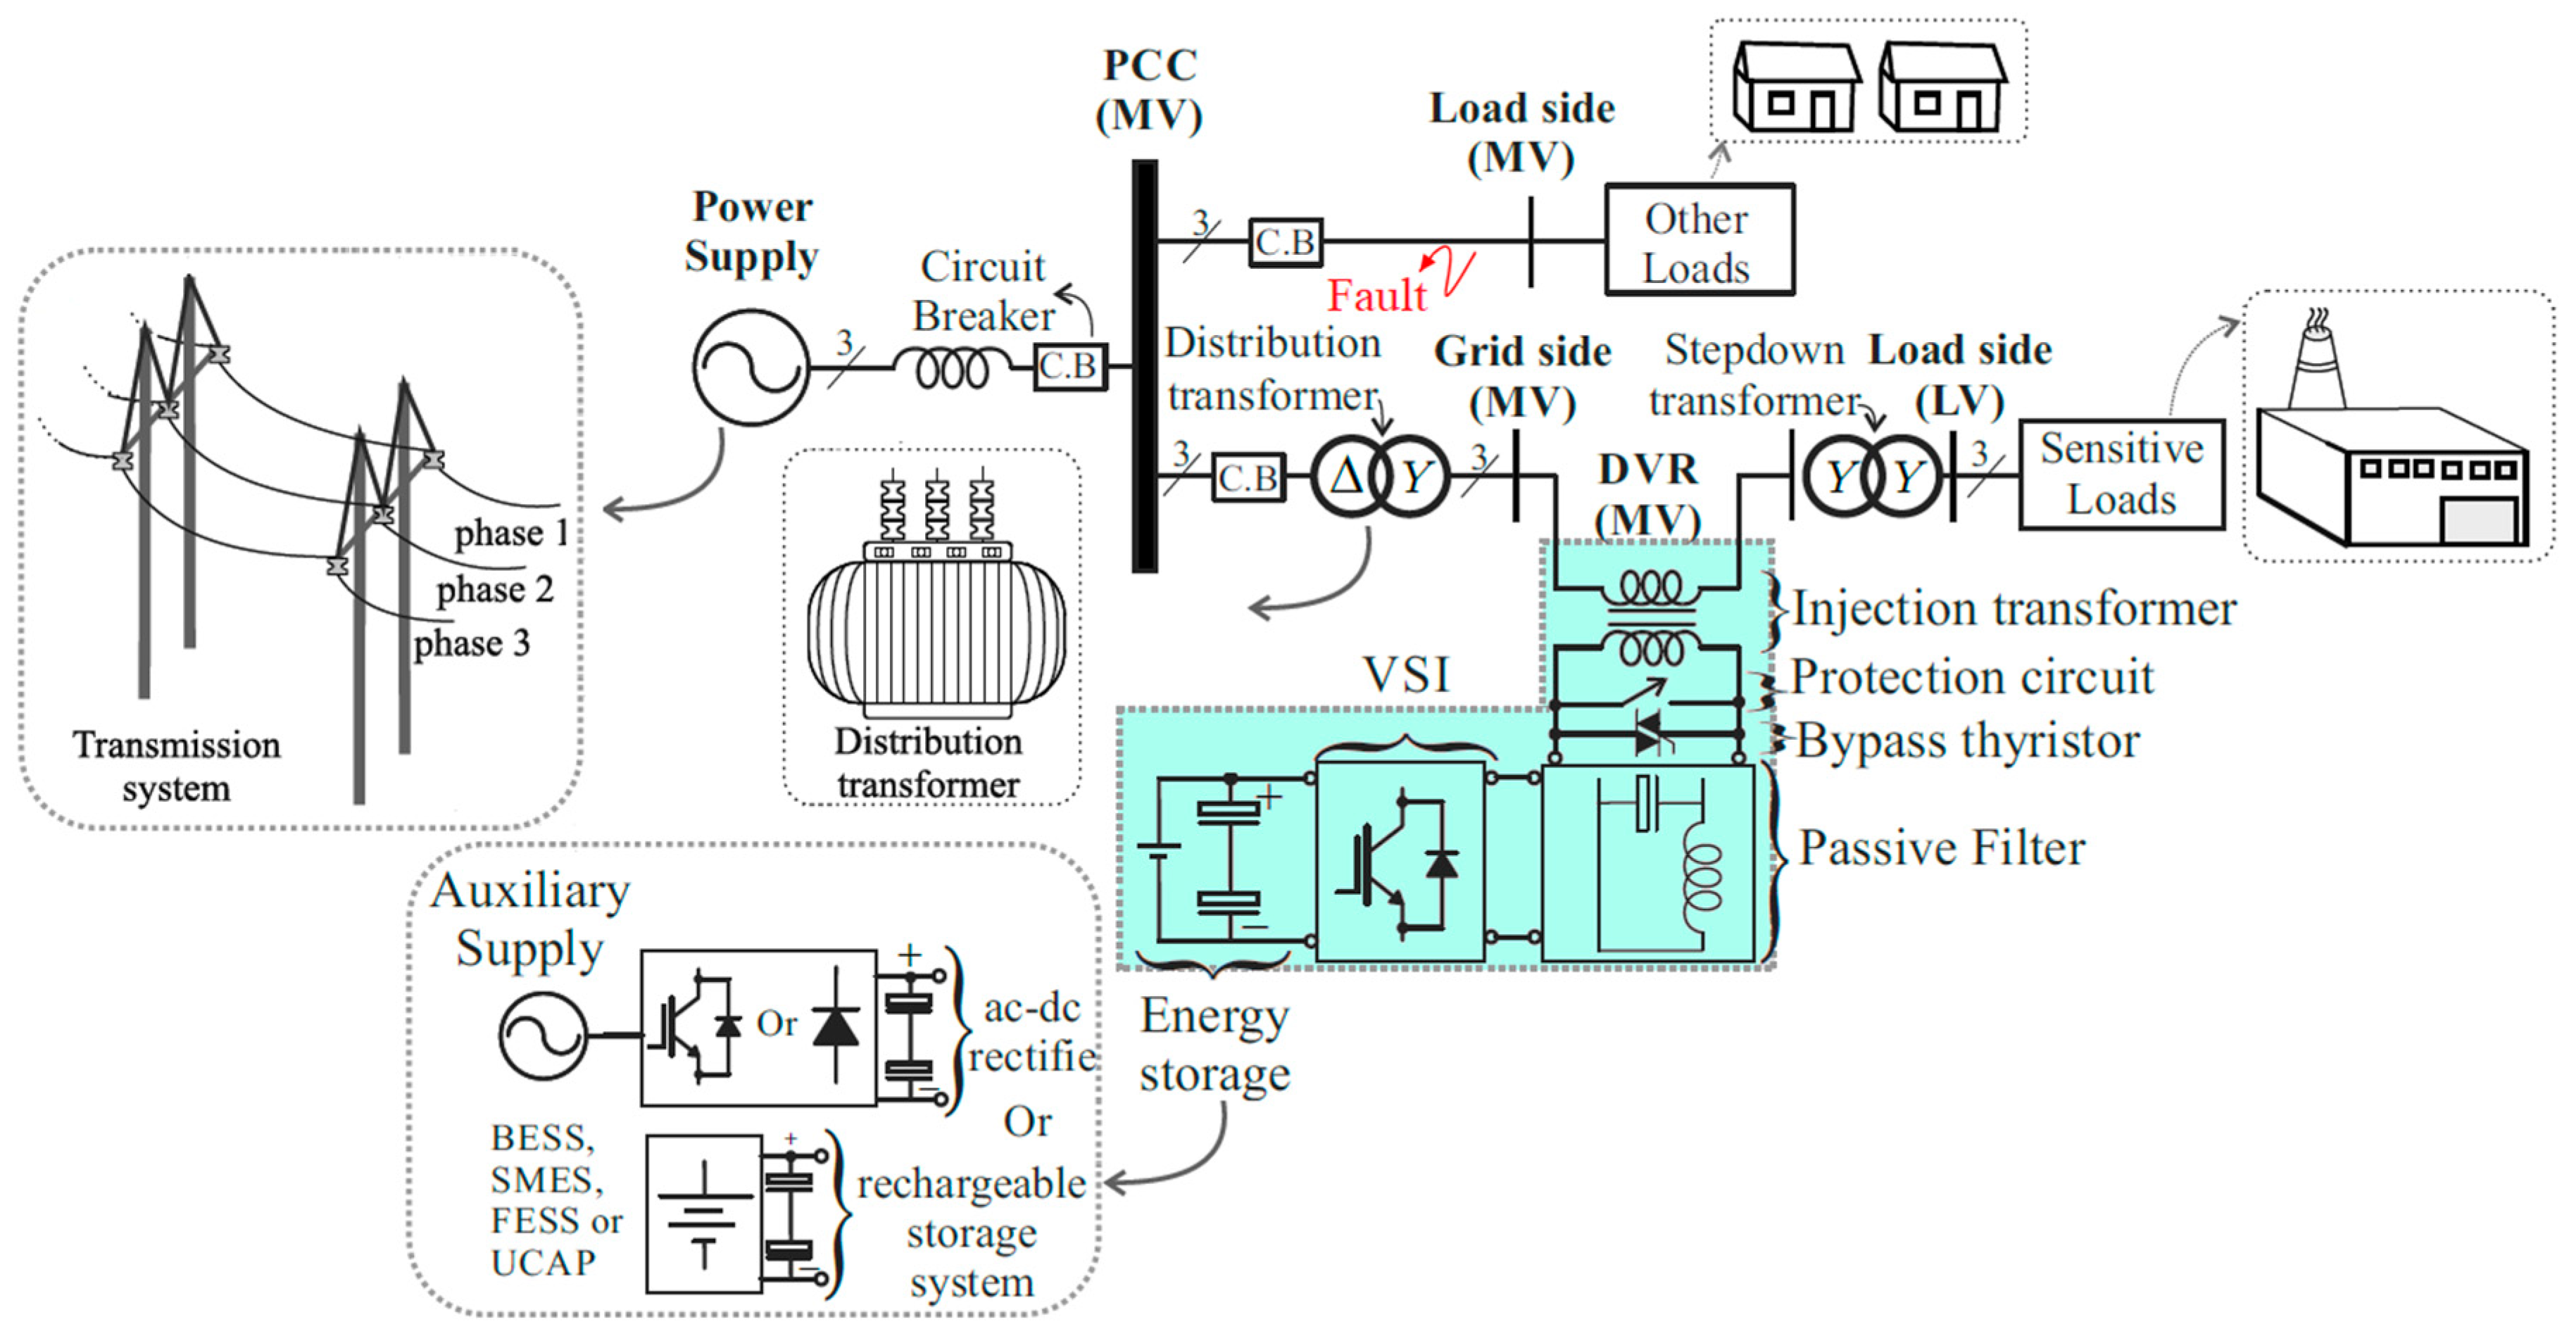 Energies Free Full Text Dynamic Voltage Restorer Dvr A Comprehensive Review Of Topologies Power Converters Control Methods And Modified Configurations Html